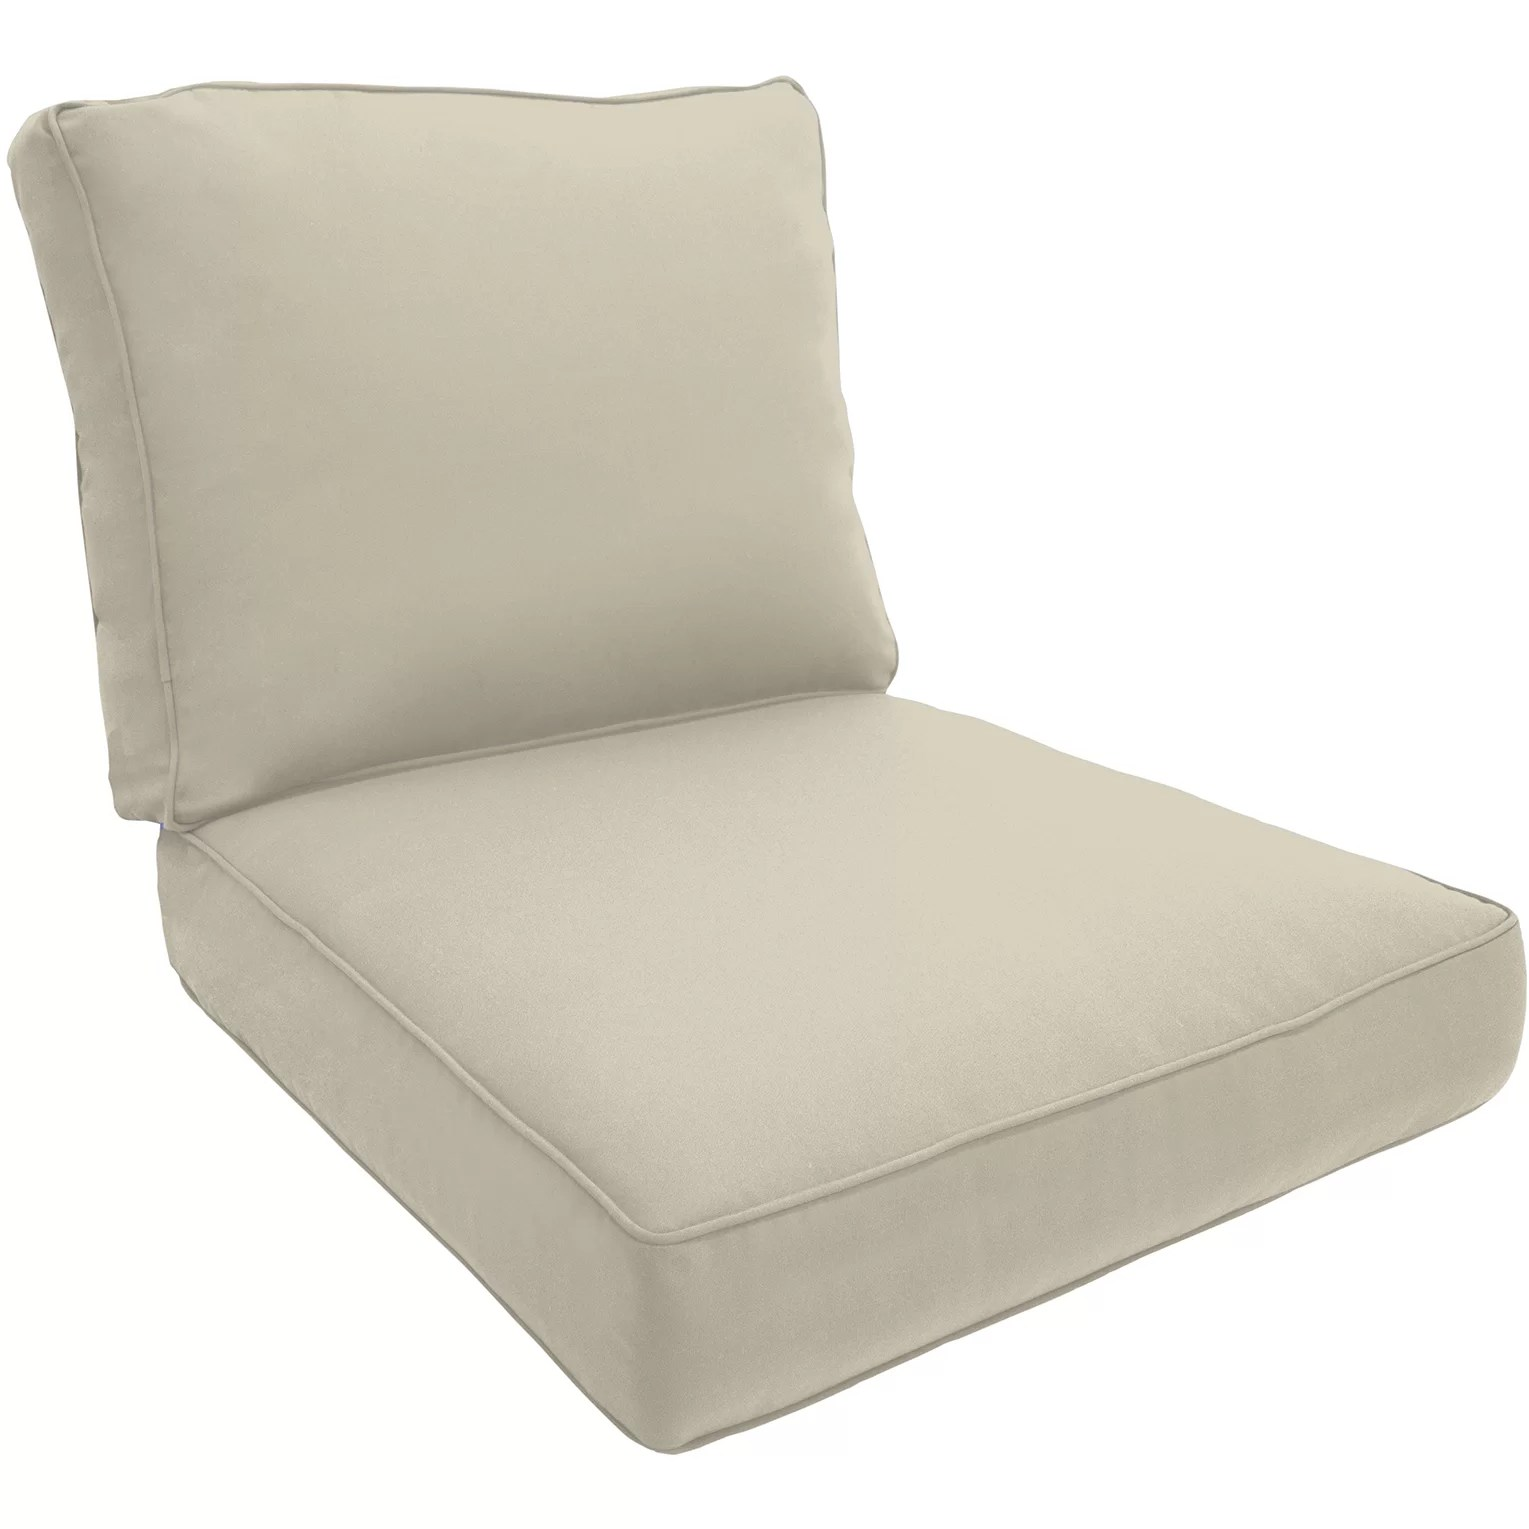 outdoor chair pads early american styles double piped lounge cushion and reviews